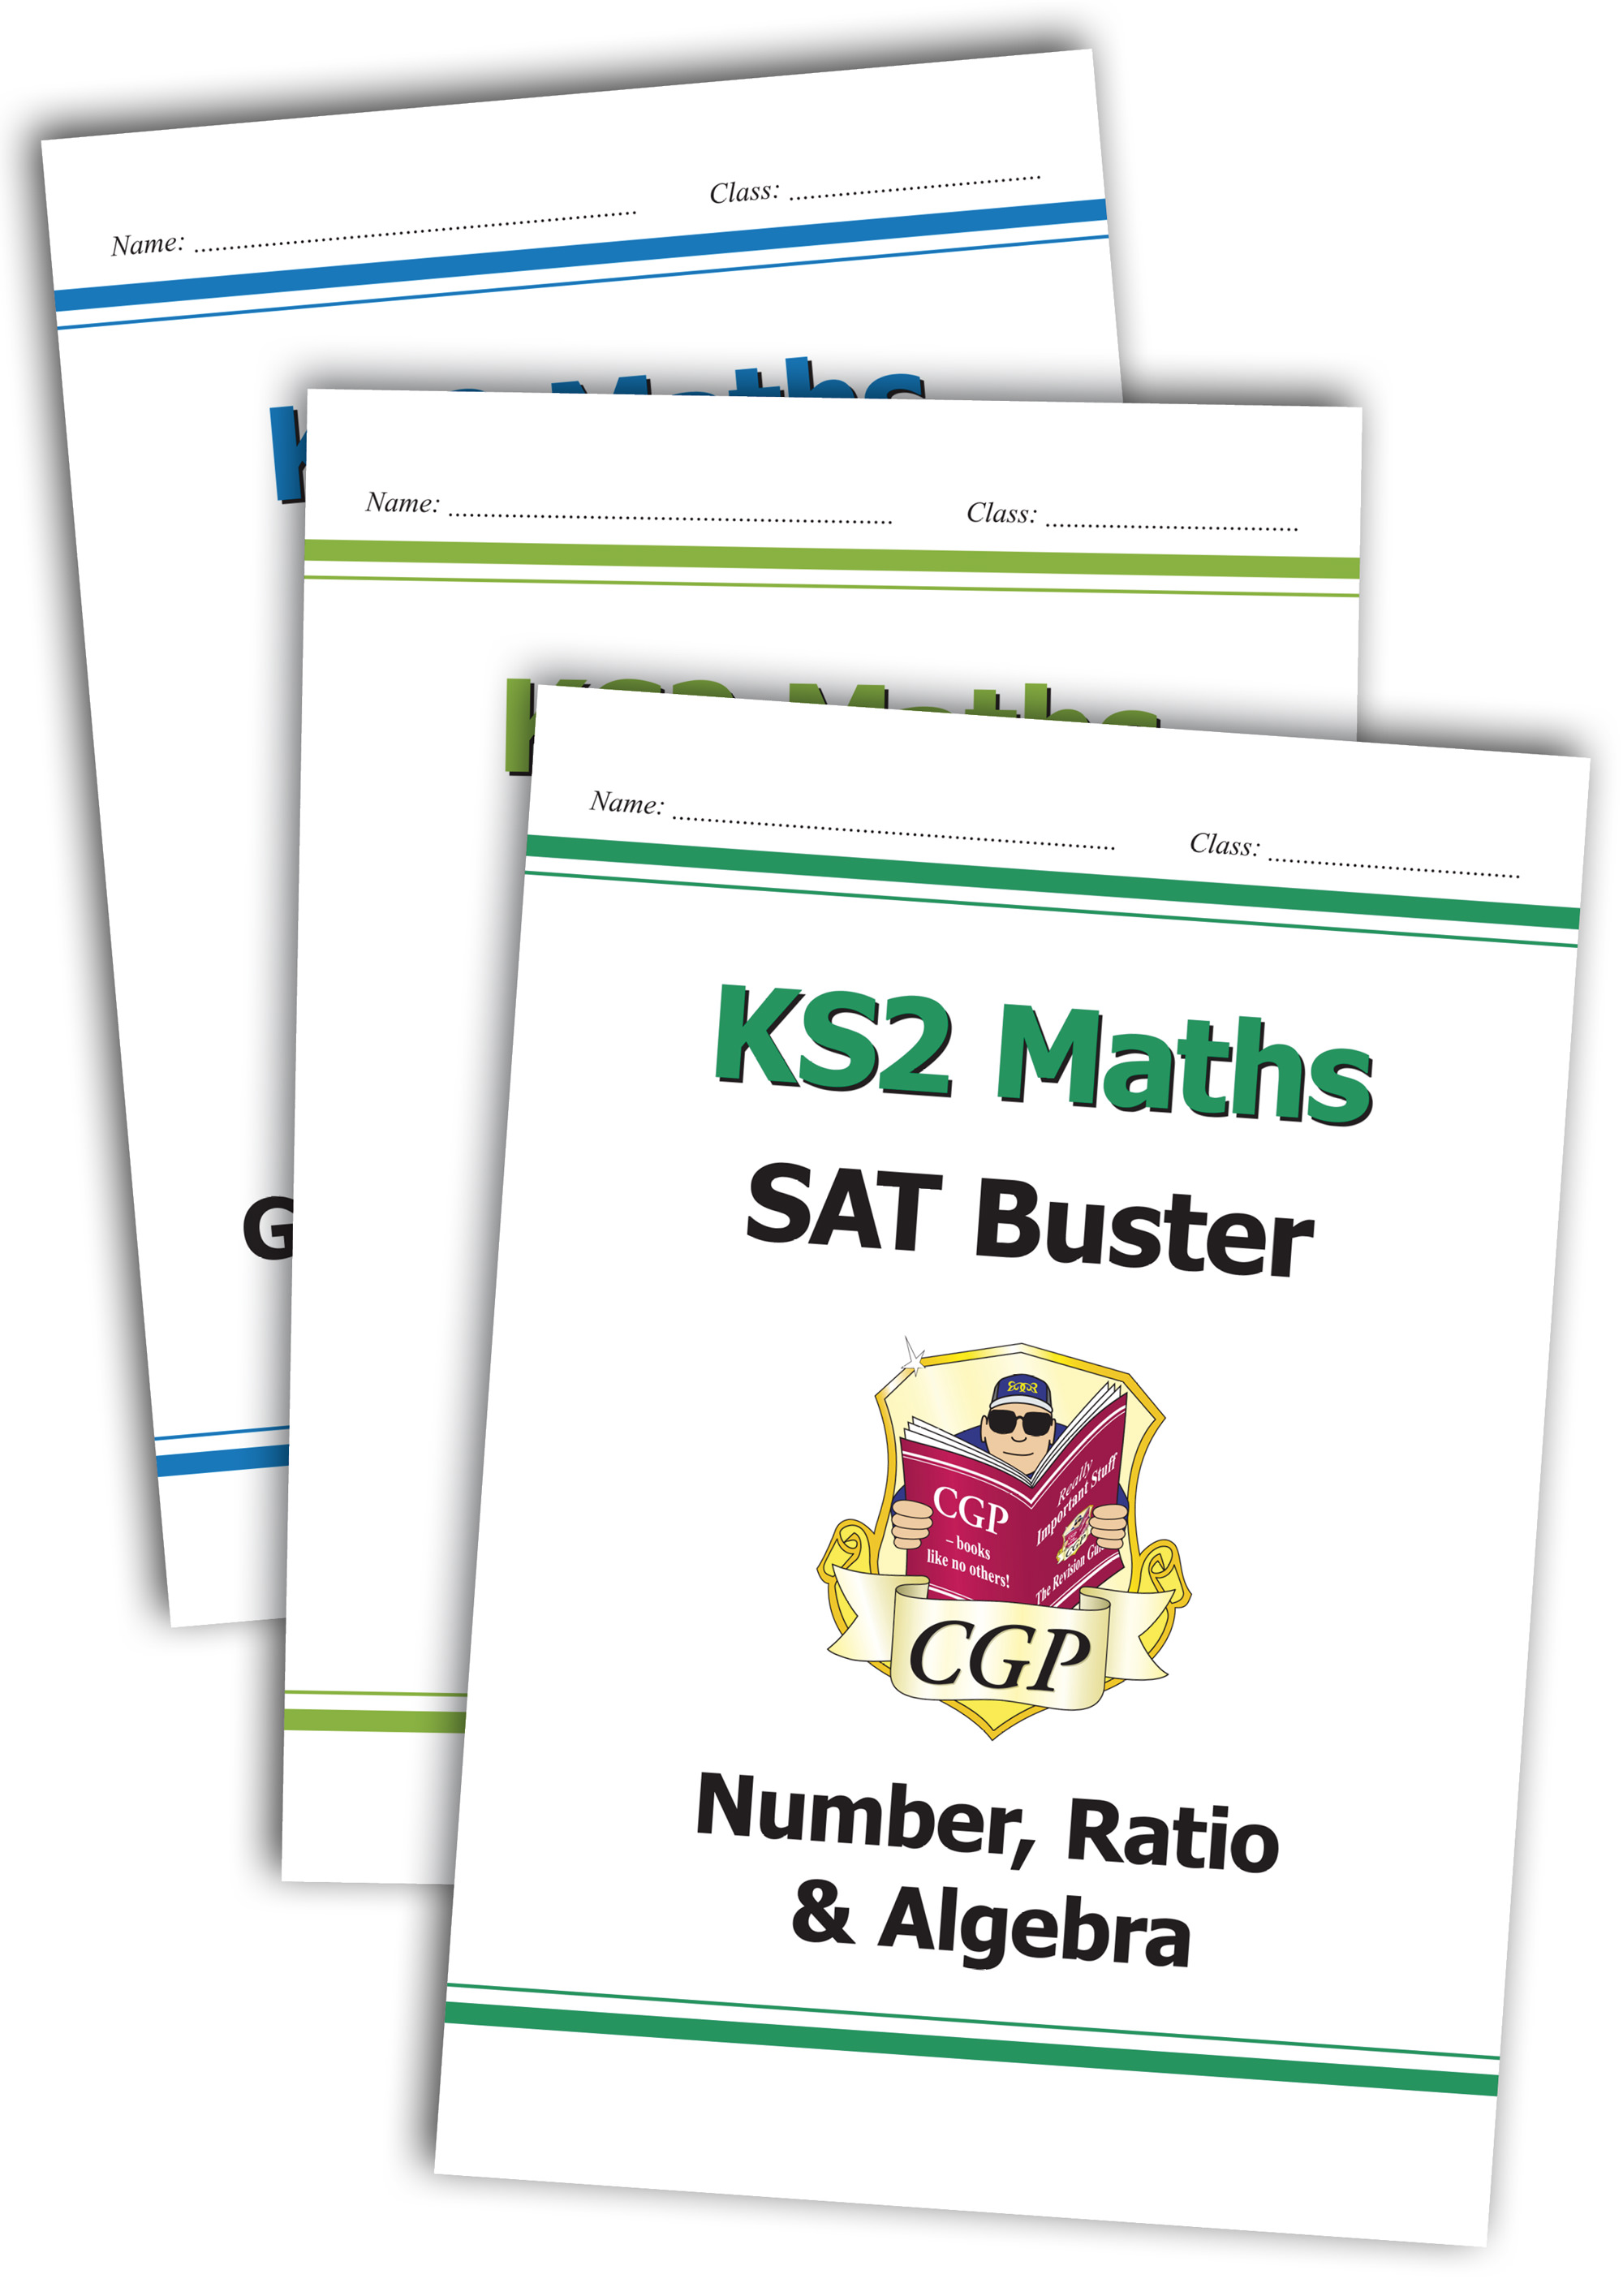 M6SBB23 - Complete KS2 Maths SAT Buster Book 1 Bundle - incl answers (for the 2019 tests)